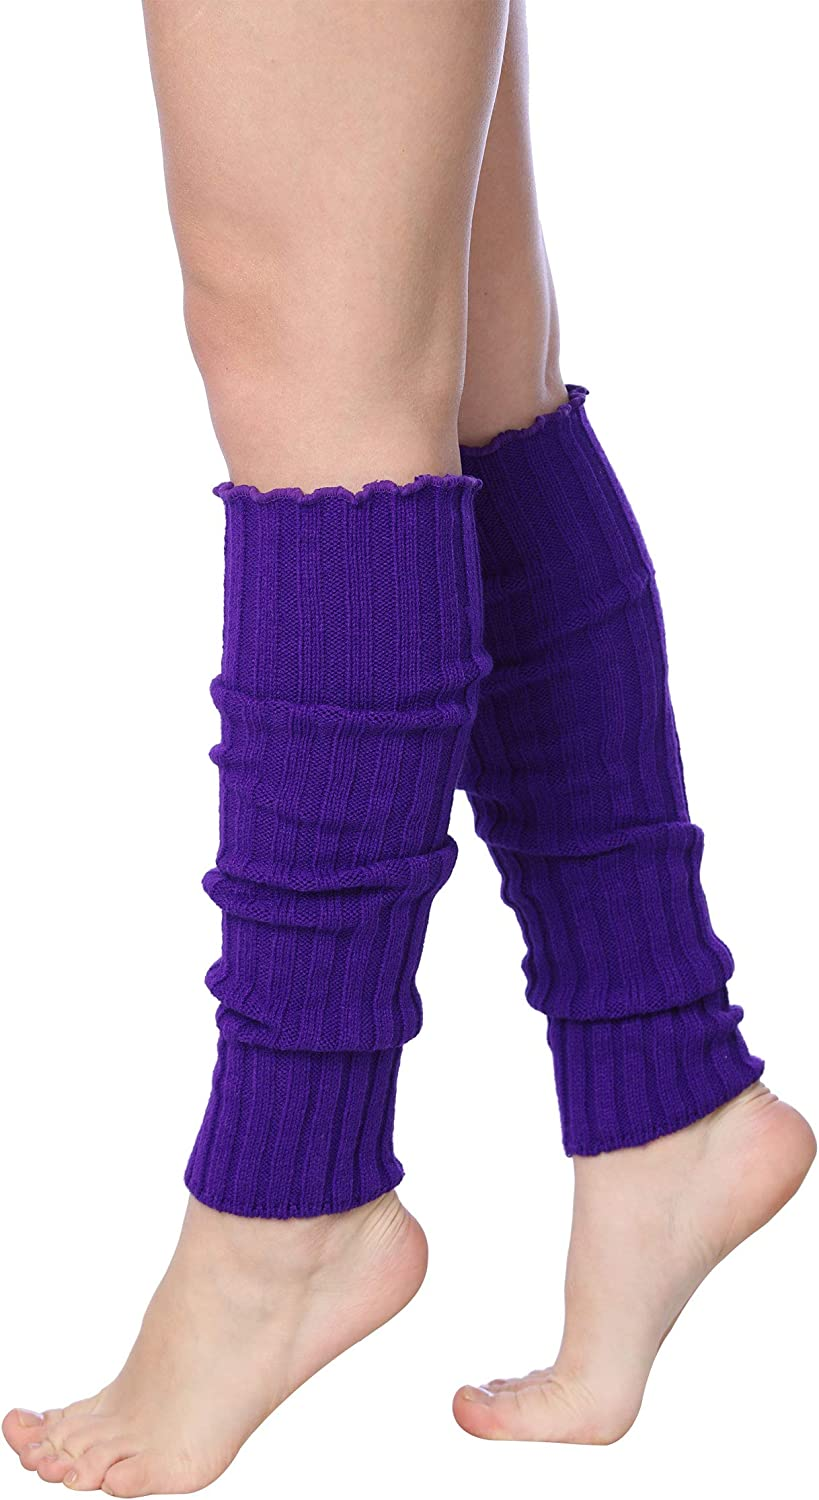 Isadora Paccini Womens Ribbed Leg Warmers for Party Sports LW48-PURPLE